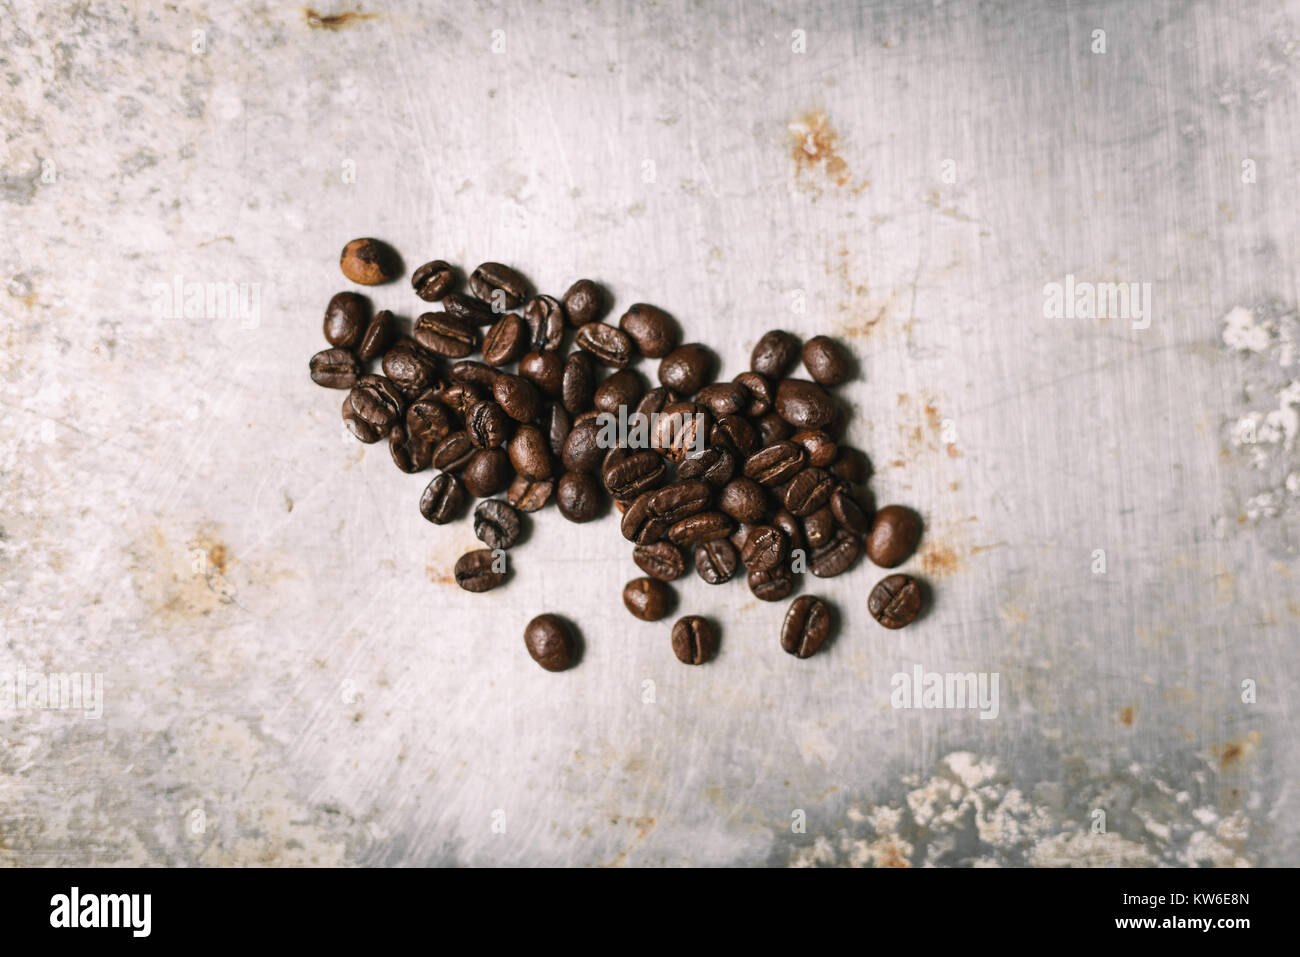 Roasted coffee bean on vintage metal surface - Stock Image